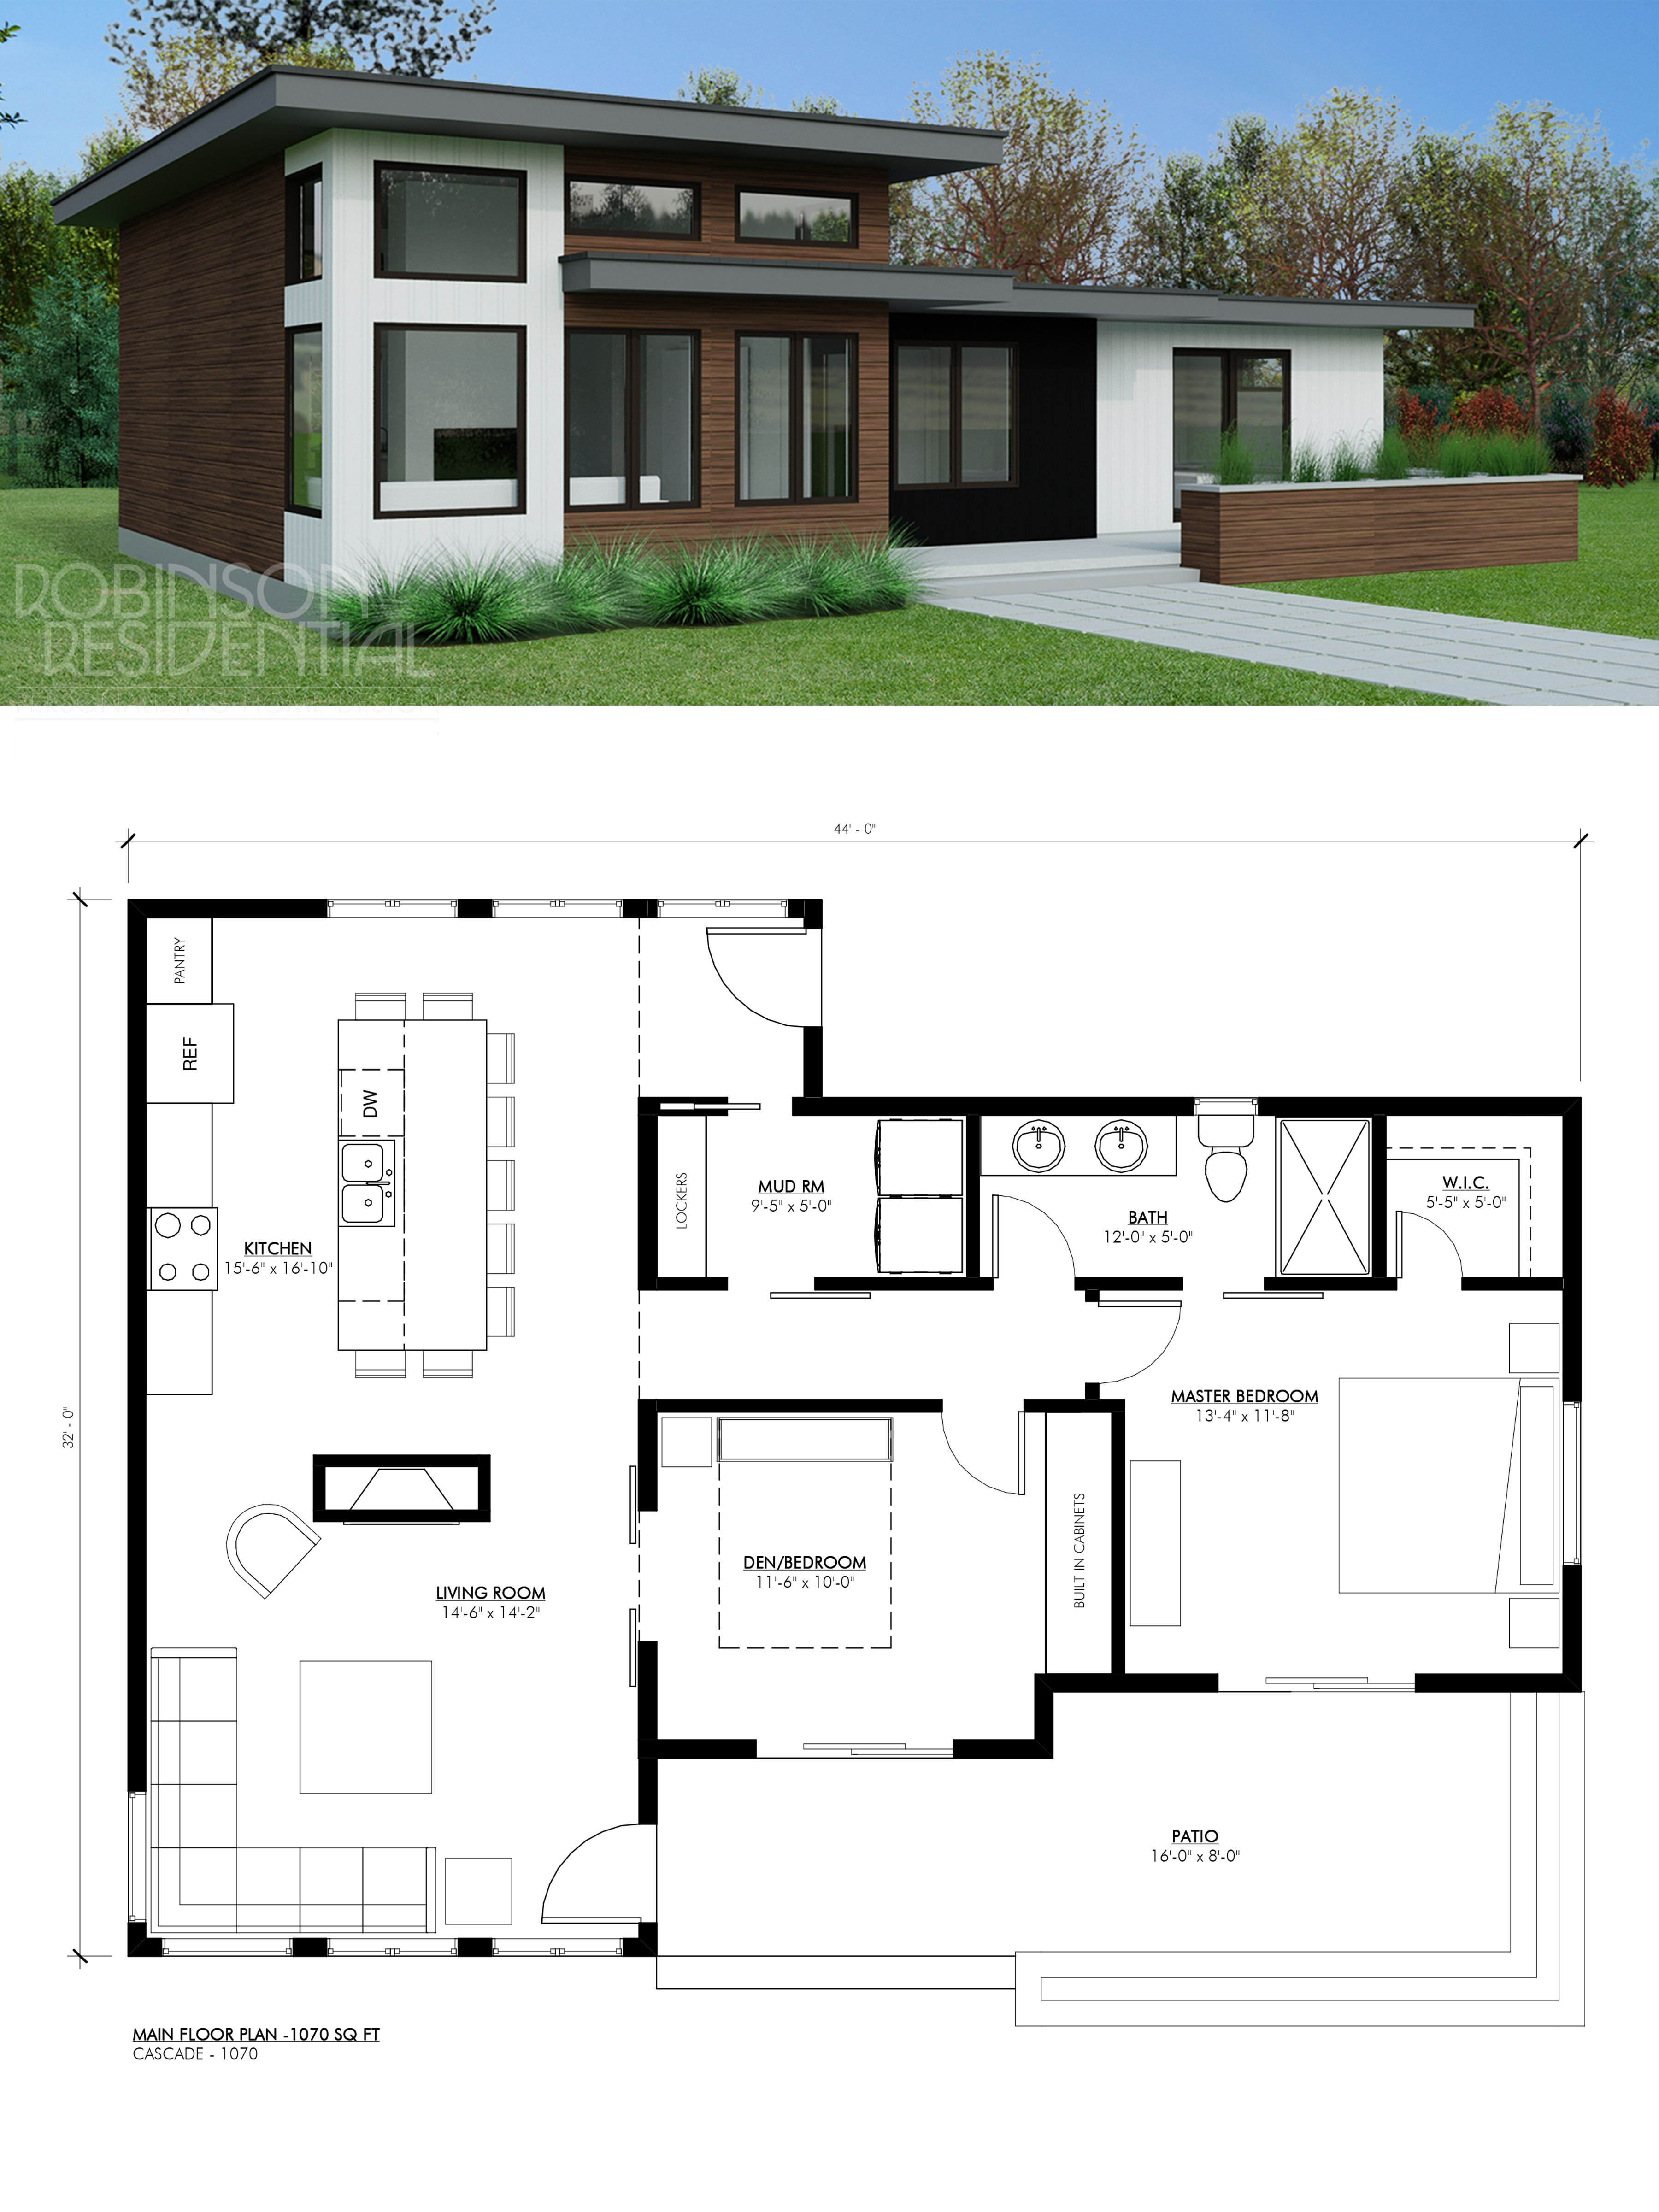 Contemporary Cascade 1070 Robinson Plans Building Plans House Sims House Plans House Blueprints